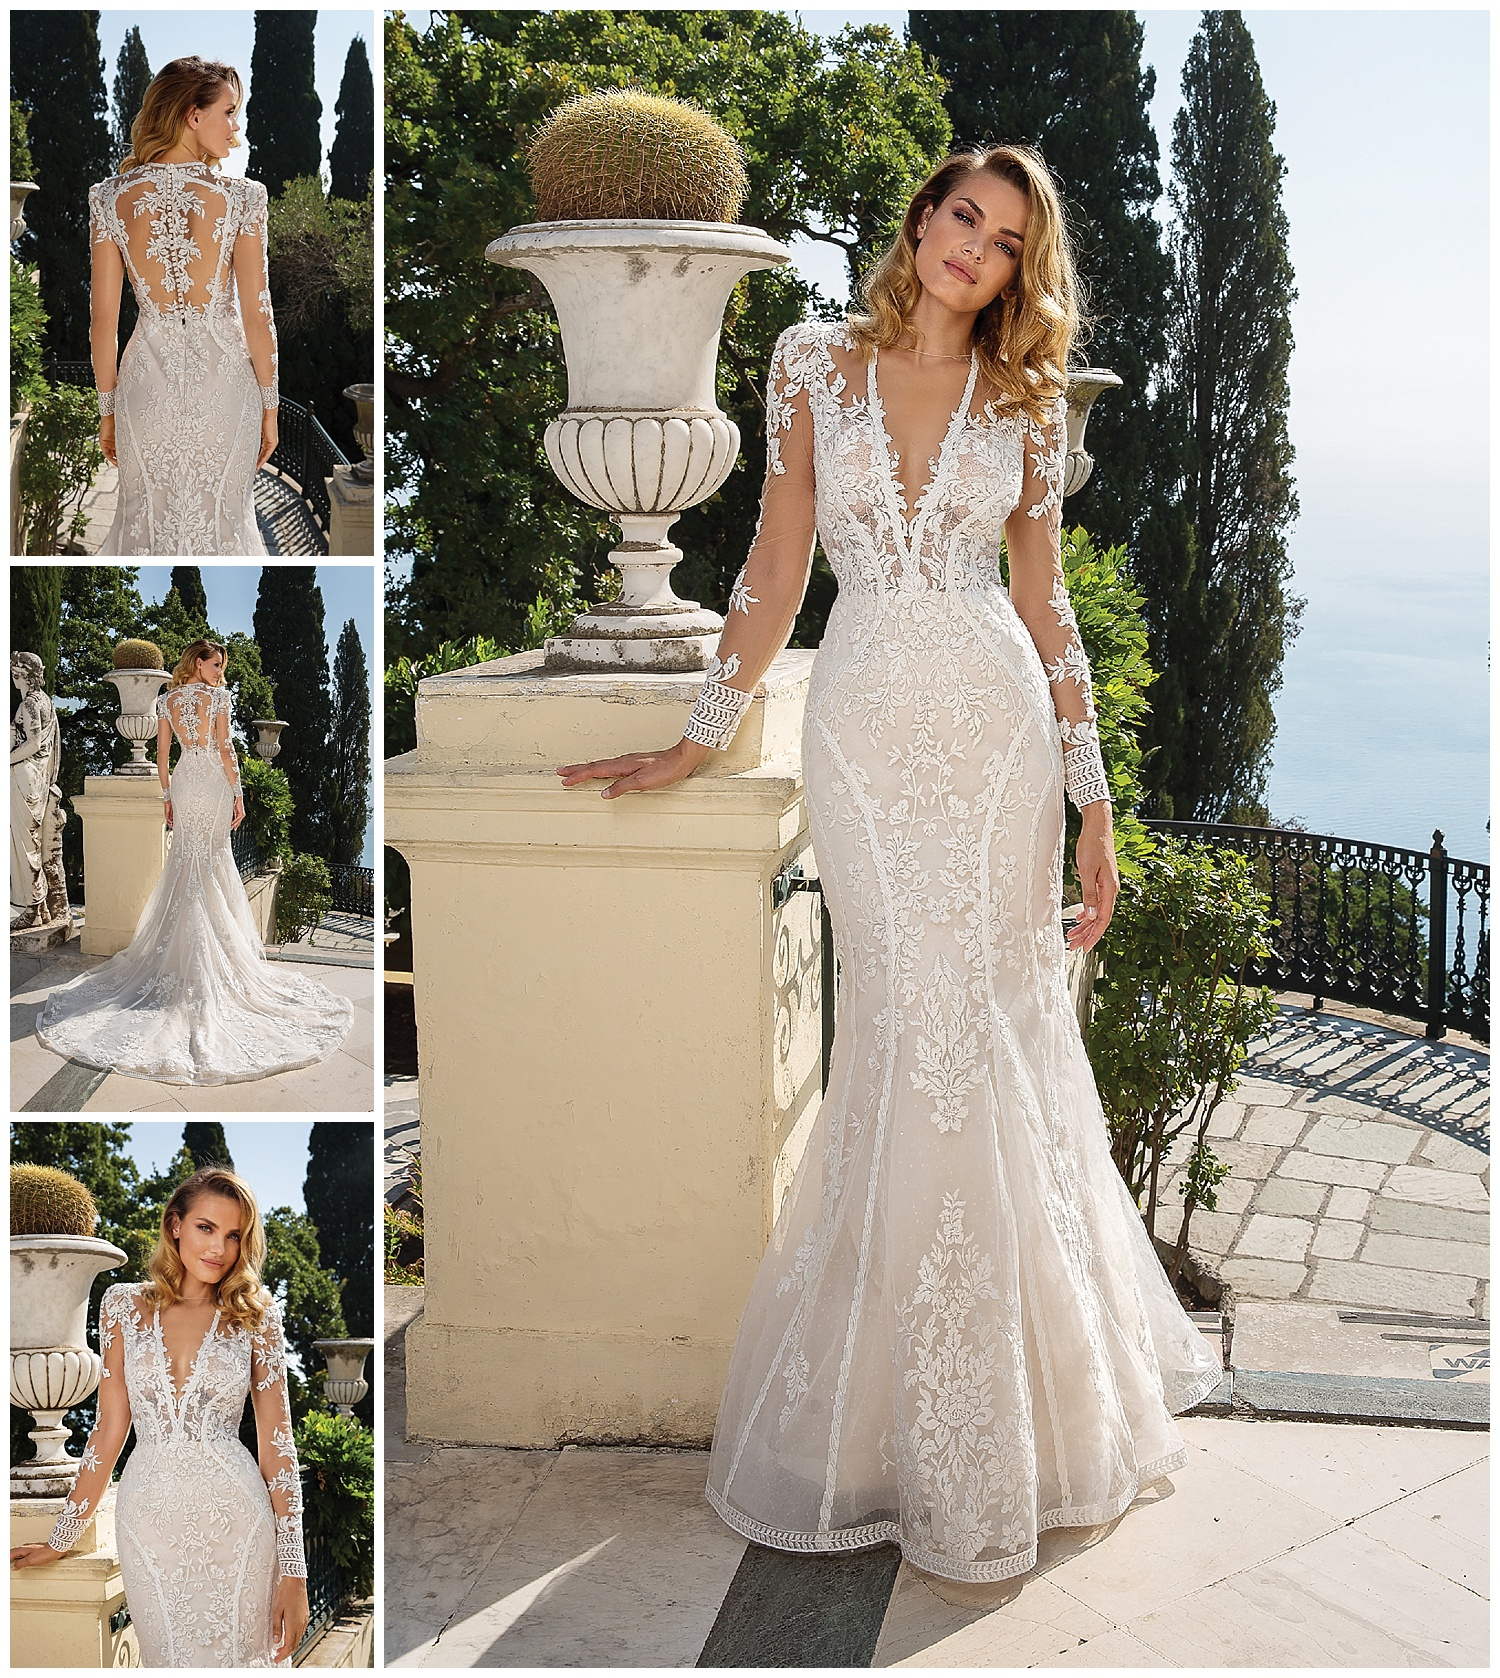 justin-alexander-88099-fitted-wedding-dress-with-sleeves-epiphany-boutique-carmel-california.jpg